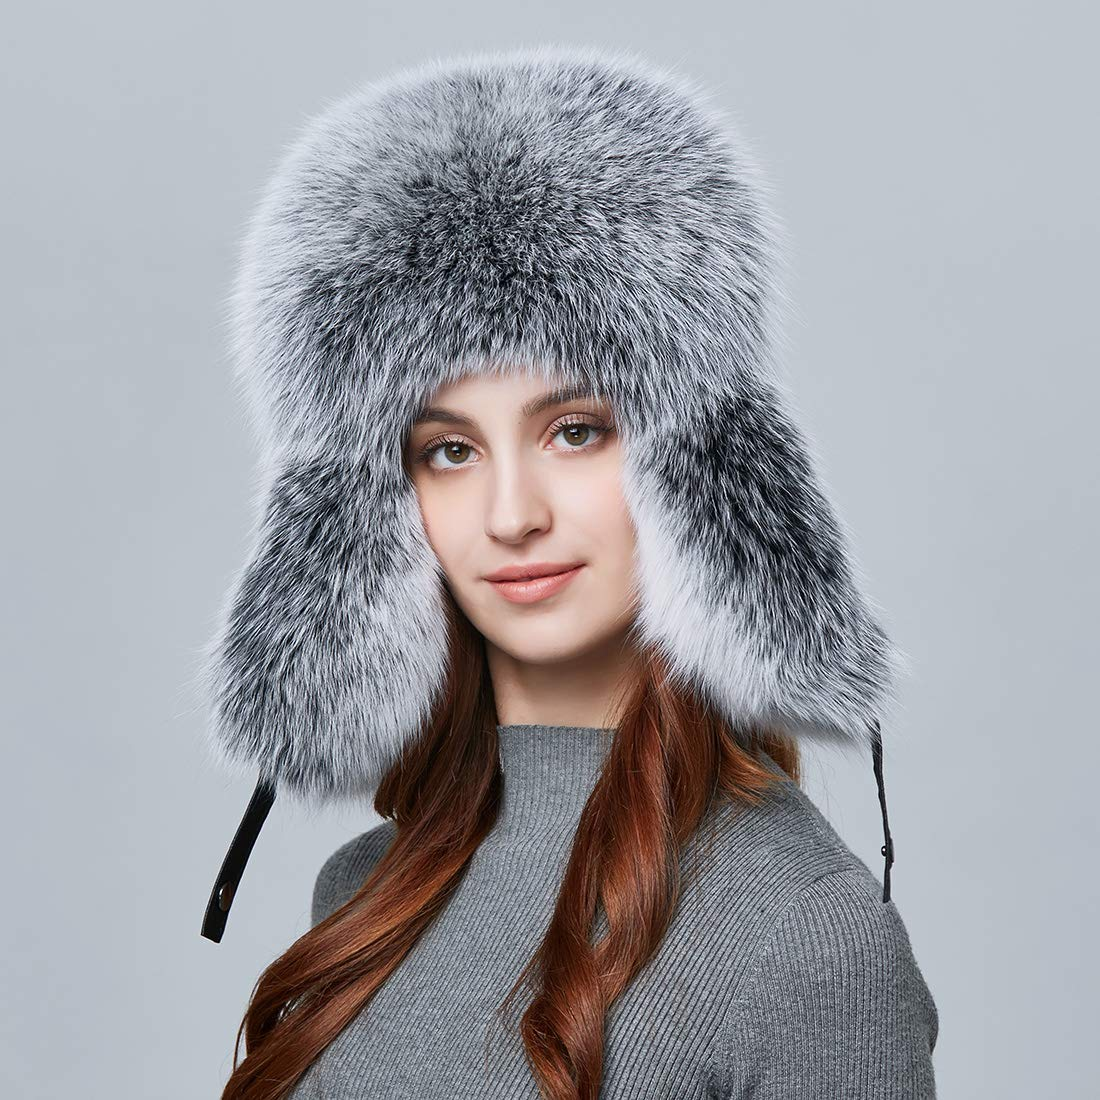 bf5c652a533 Befur winter men real fox fur hat genuine leather russia aviator jpg  1100x1100 Winter bomber hats